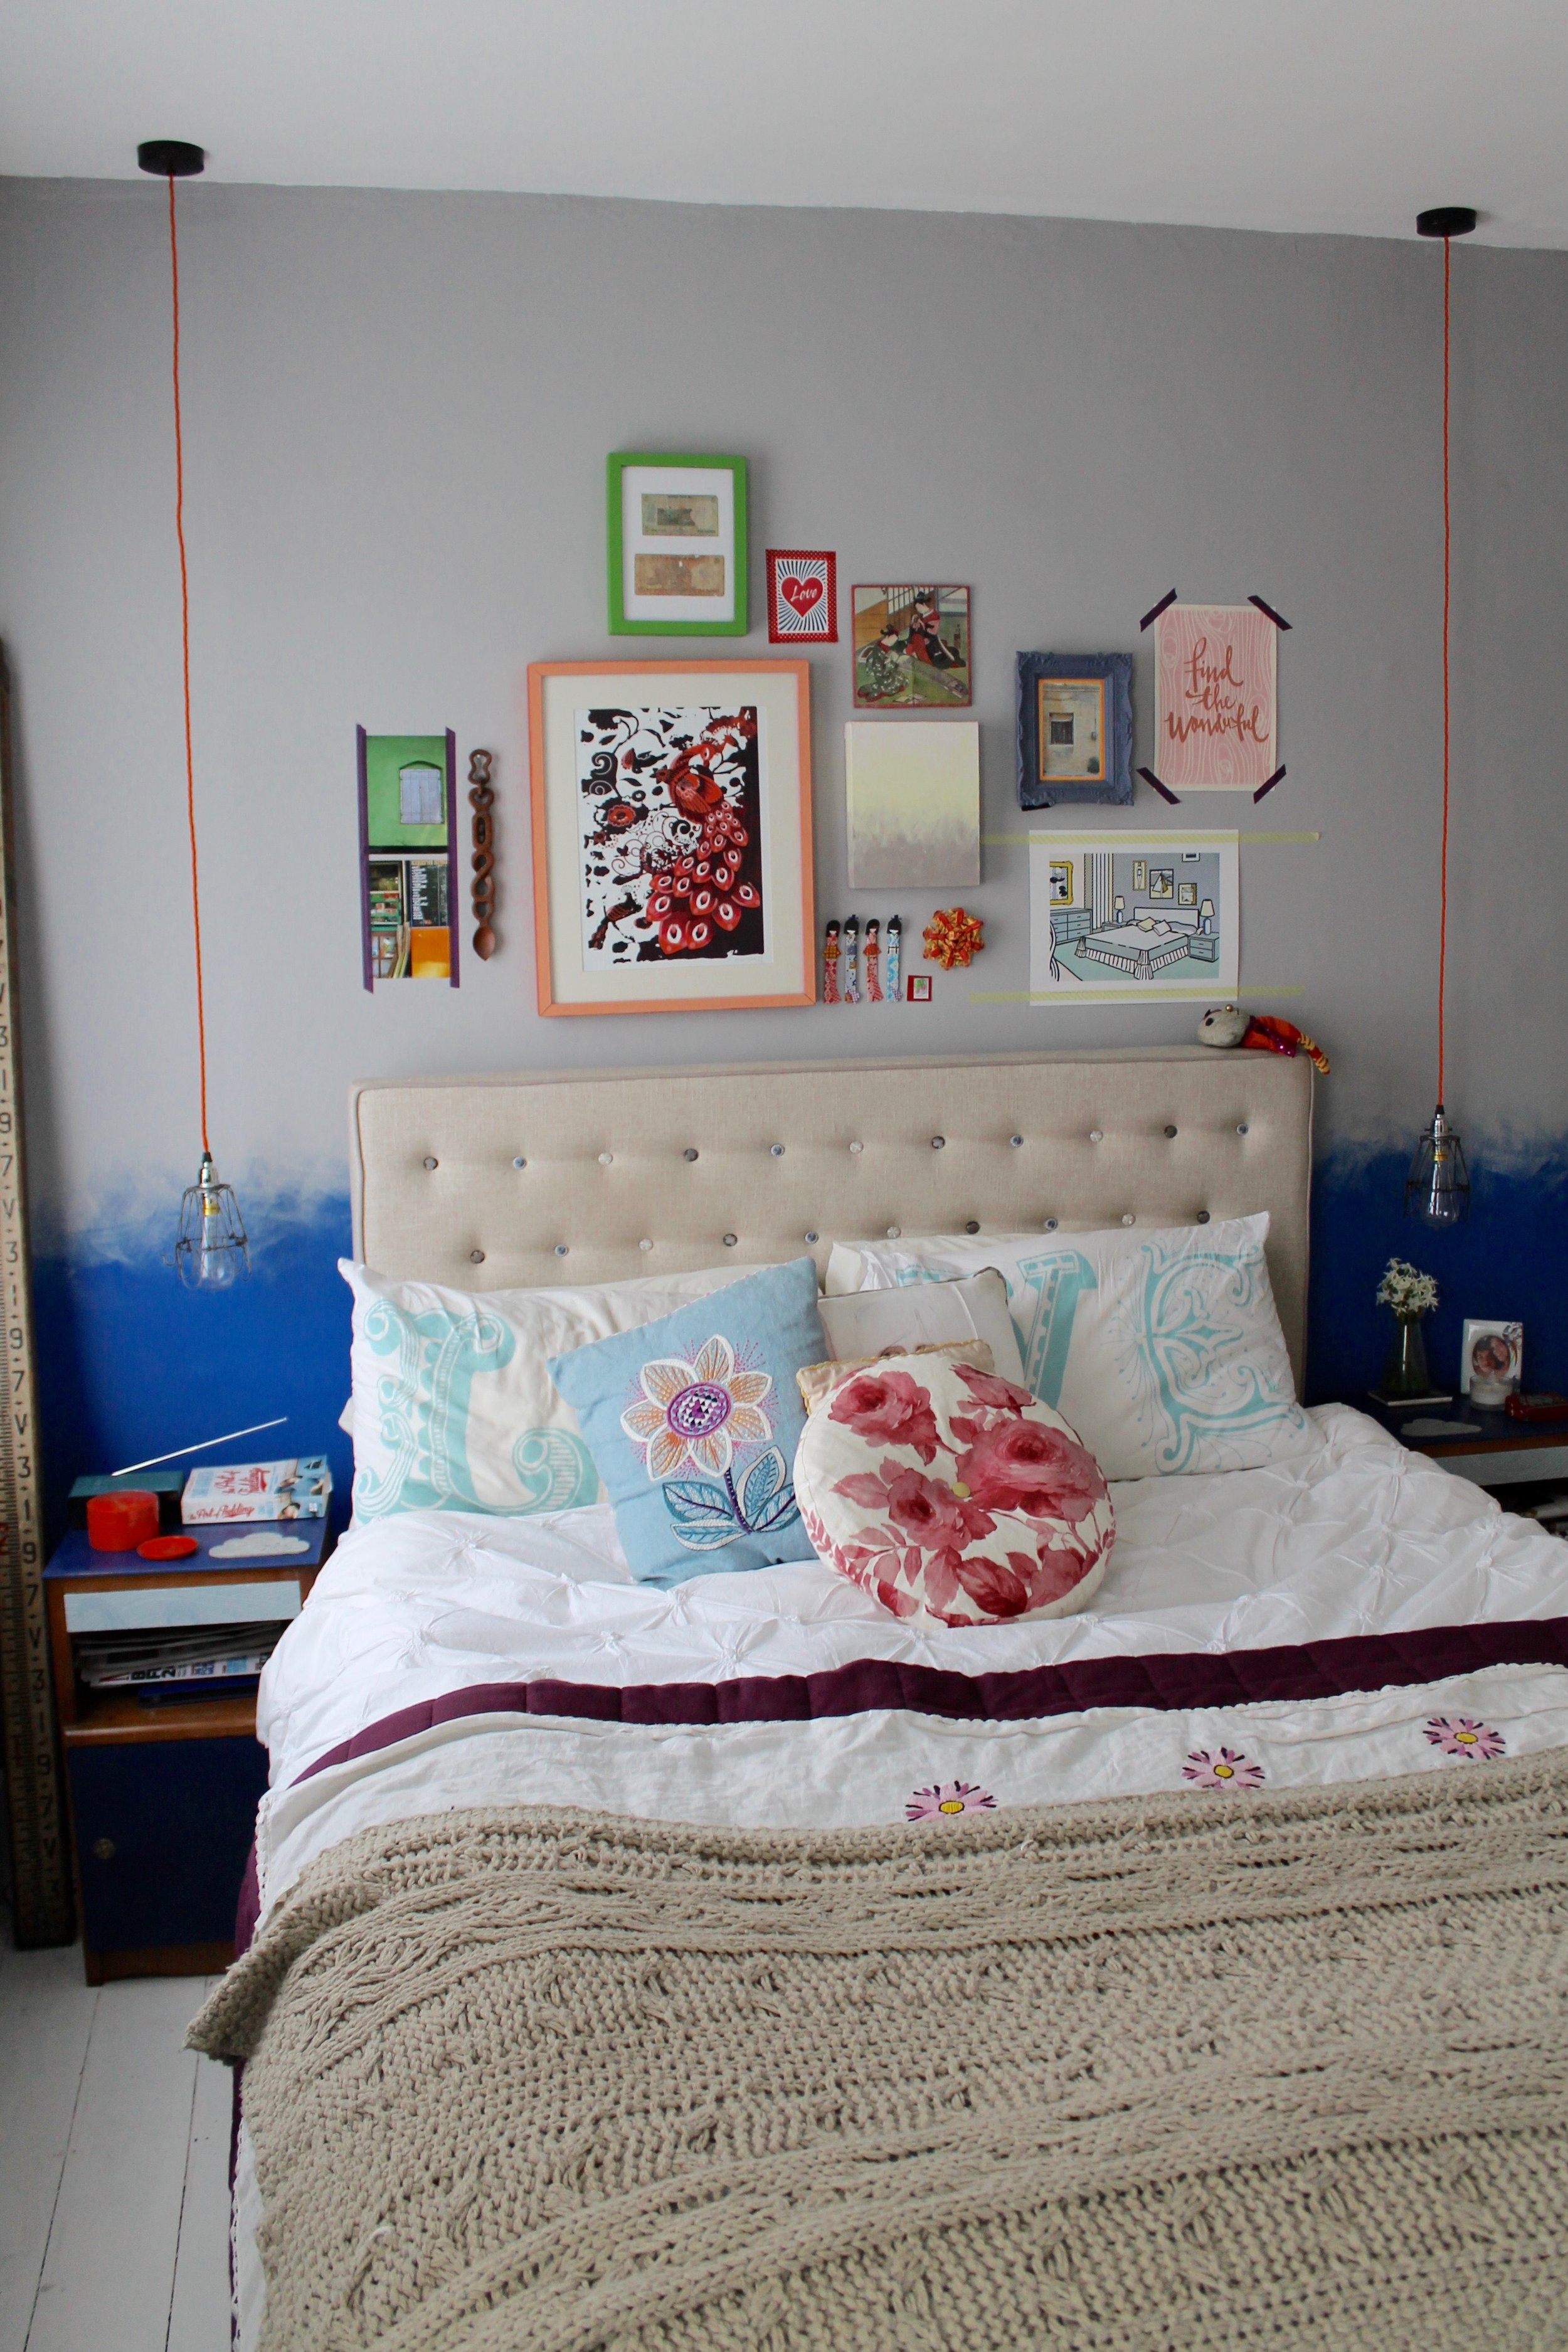 Photography provided by Joanna Thornhill -  Bedroom showing ombre feature wall and vintage customised bedside cabinets